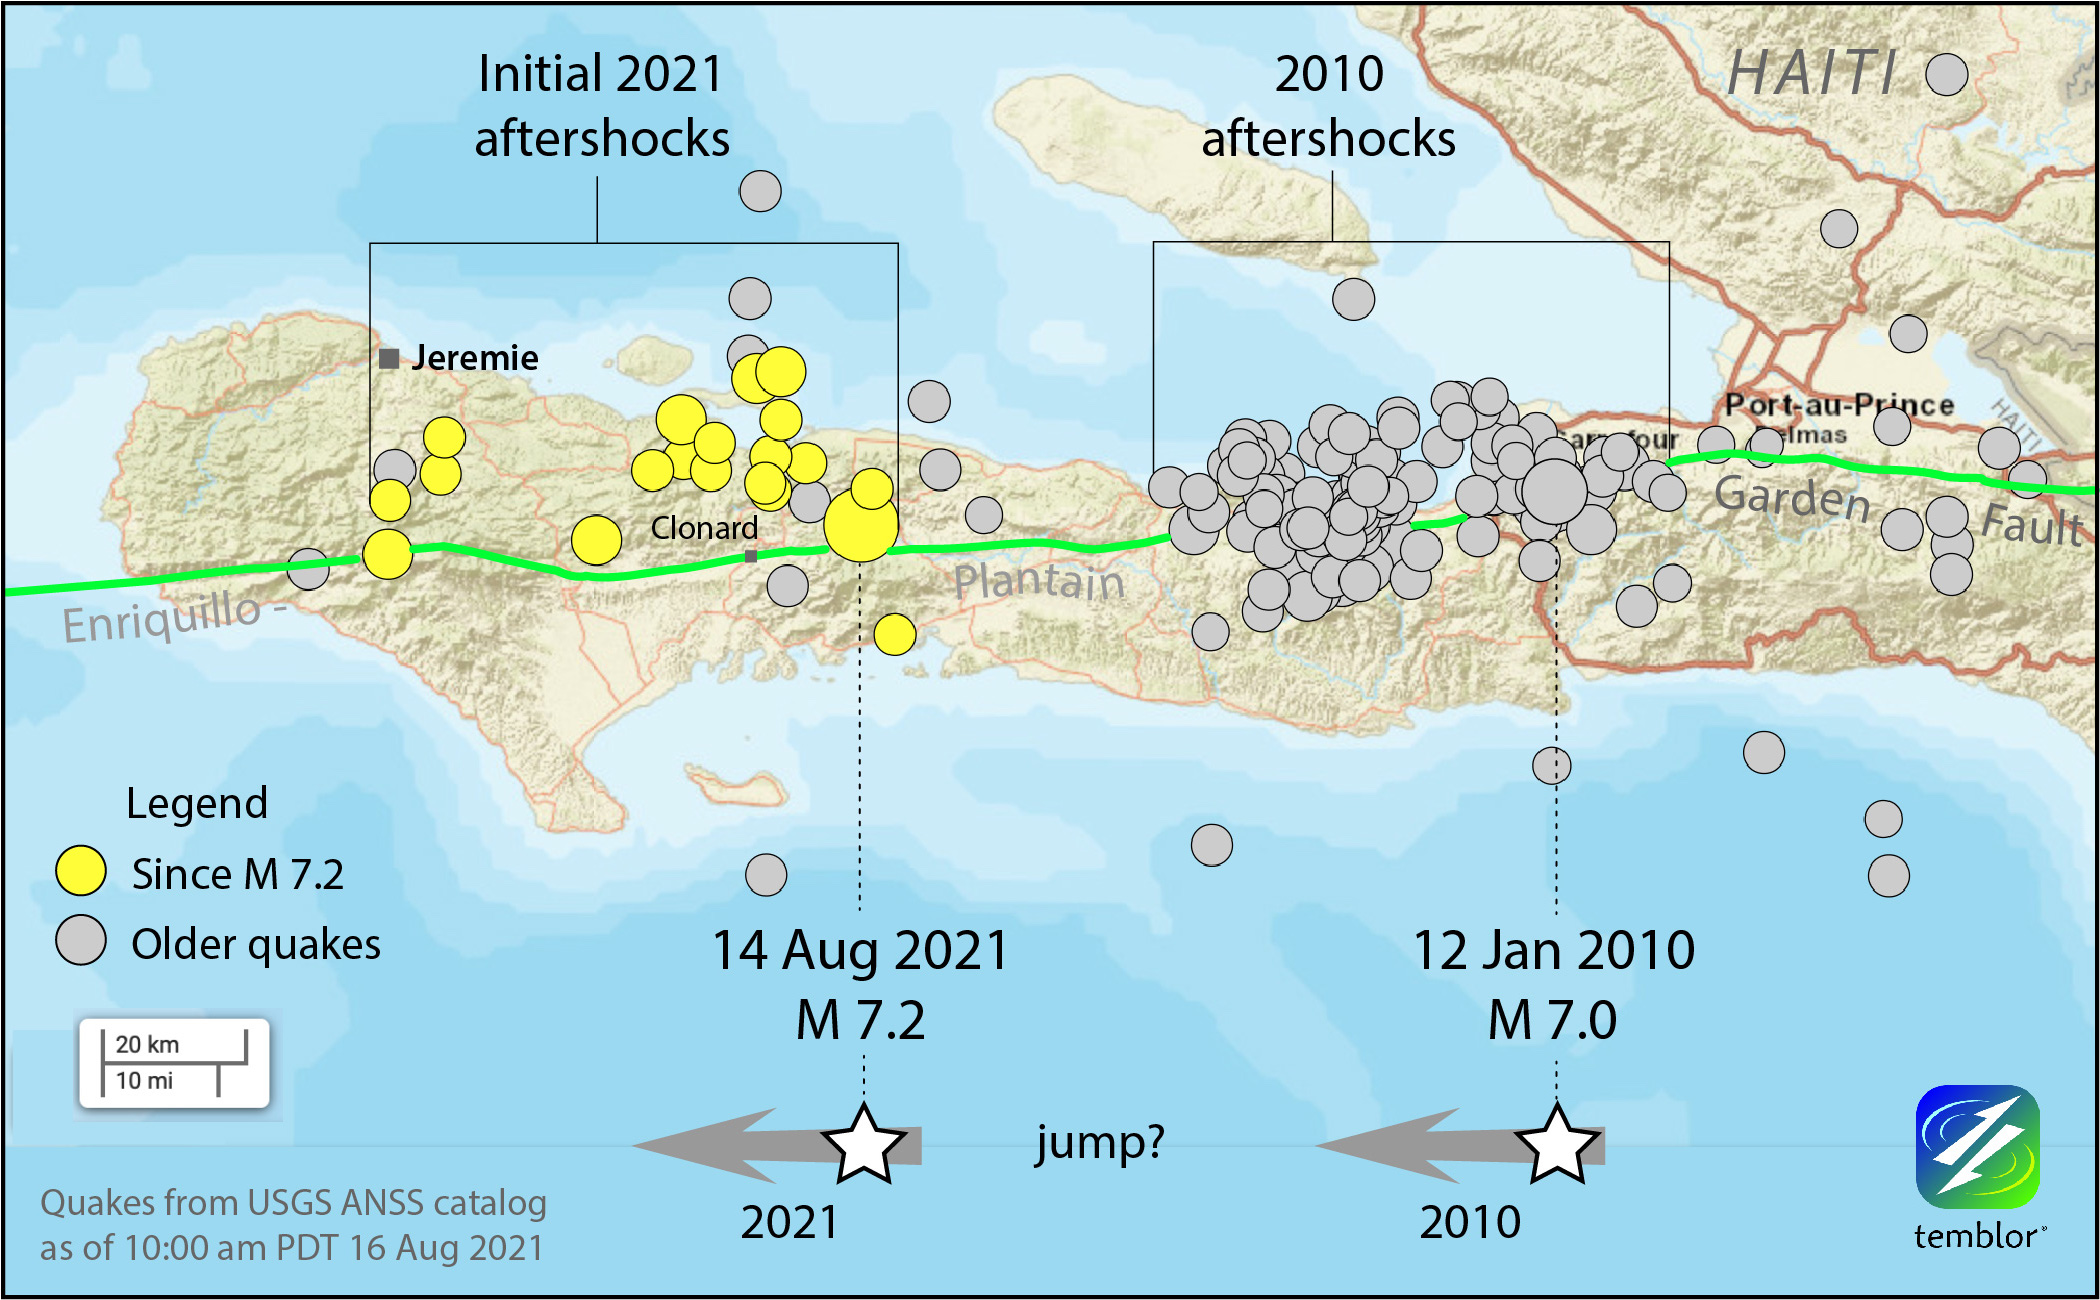 Haiti's 2010 earthquake likely brought the fault that ruptured in the Aug. 14, 2021 quake closer to failure. Some elements suggest a westward ea